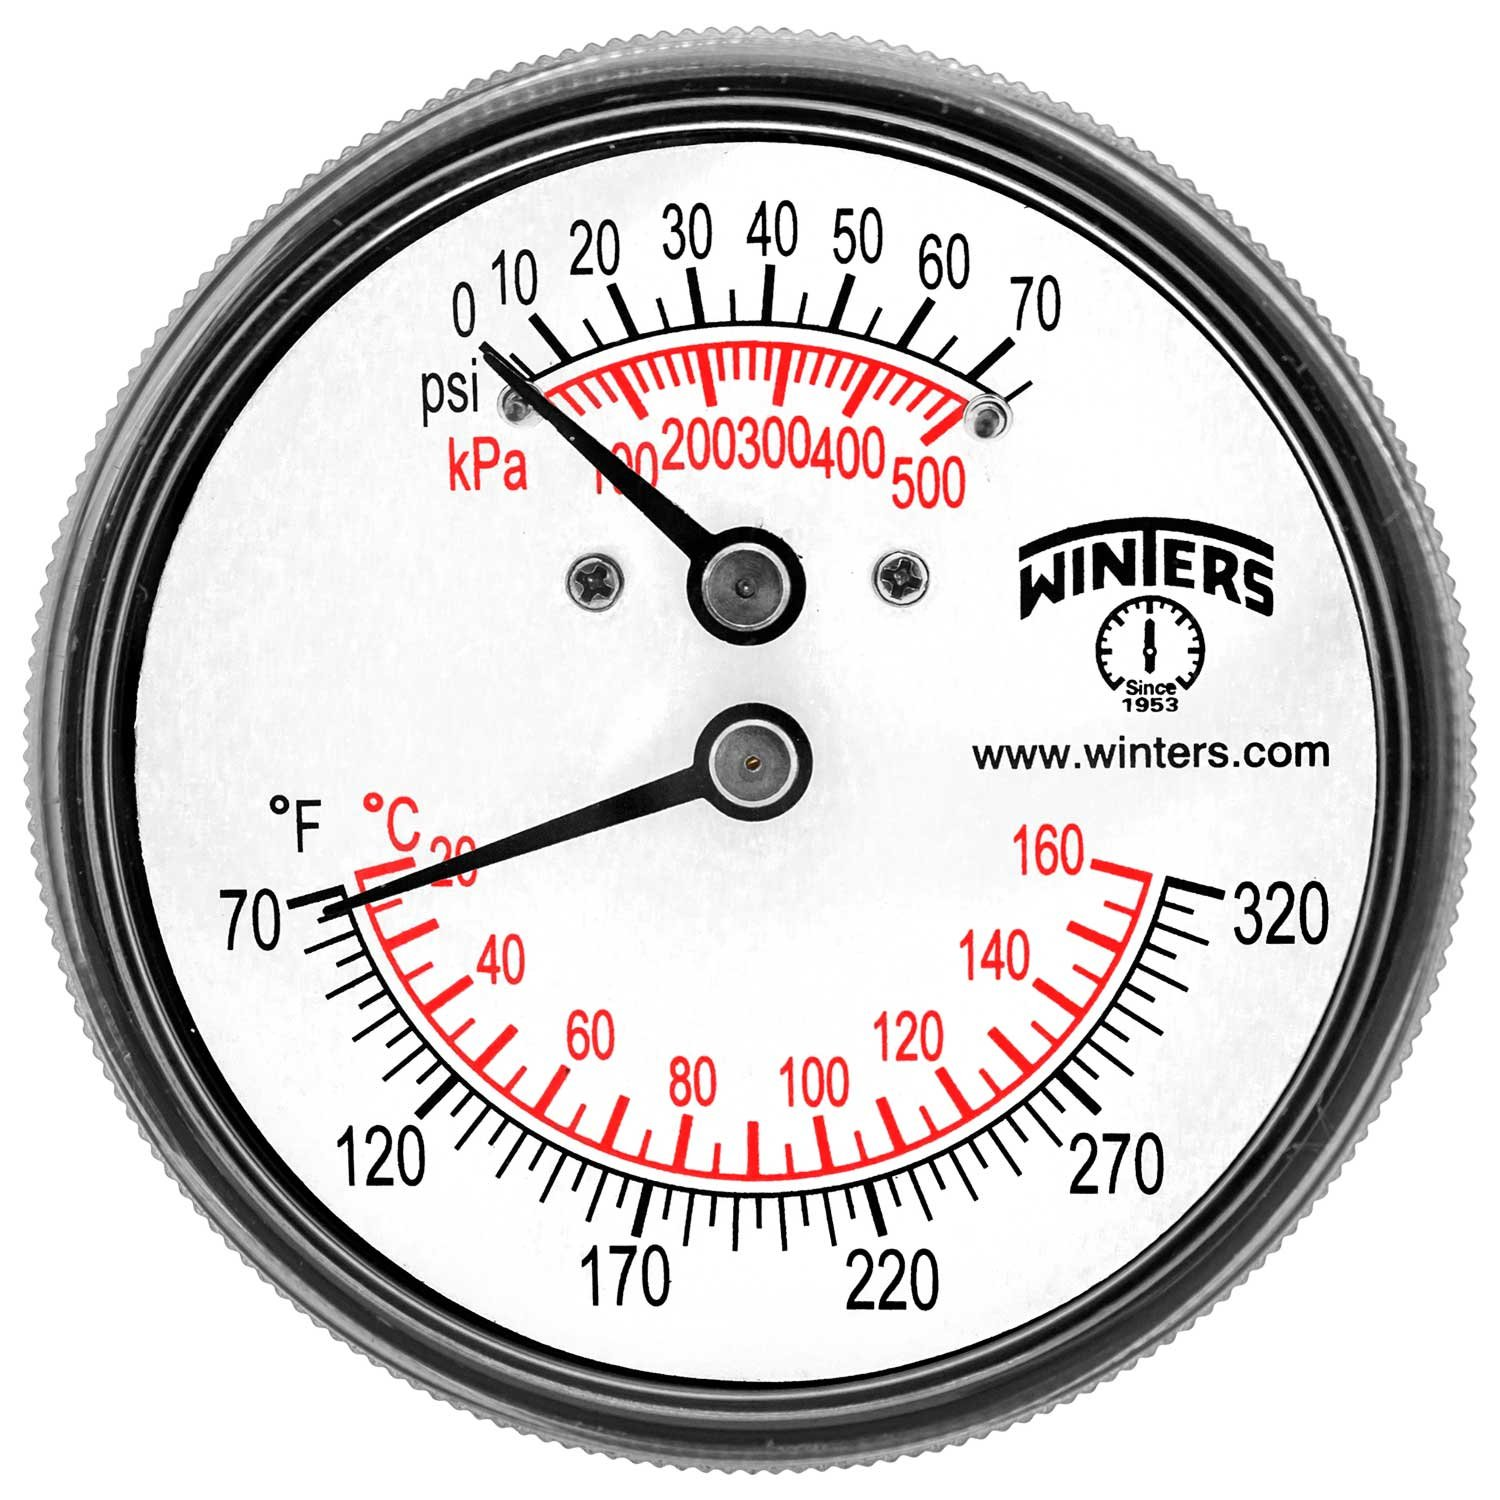 Winters TTD Series Steel Dual Scale Tridicator Thermometer with 2'' Stem, 0-75psi/kpa, 2-1/2'' Dial Display, ±3-2-3% Accuracy, 1/4'' NPT Back Mount, 70-320 Deg F/C by Winters Instruments